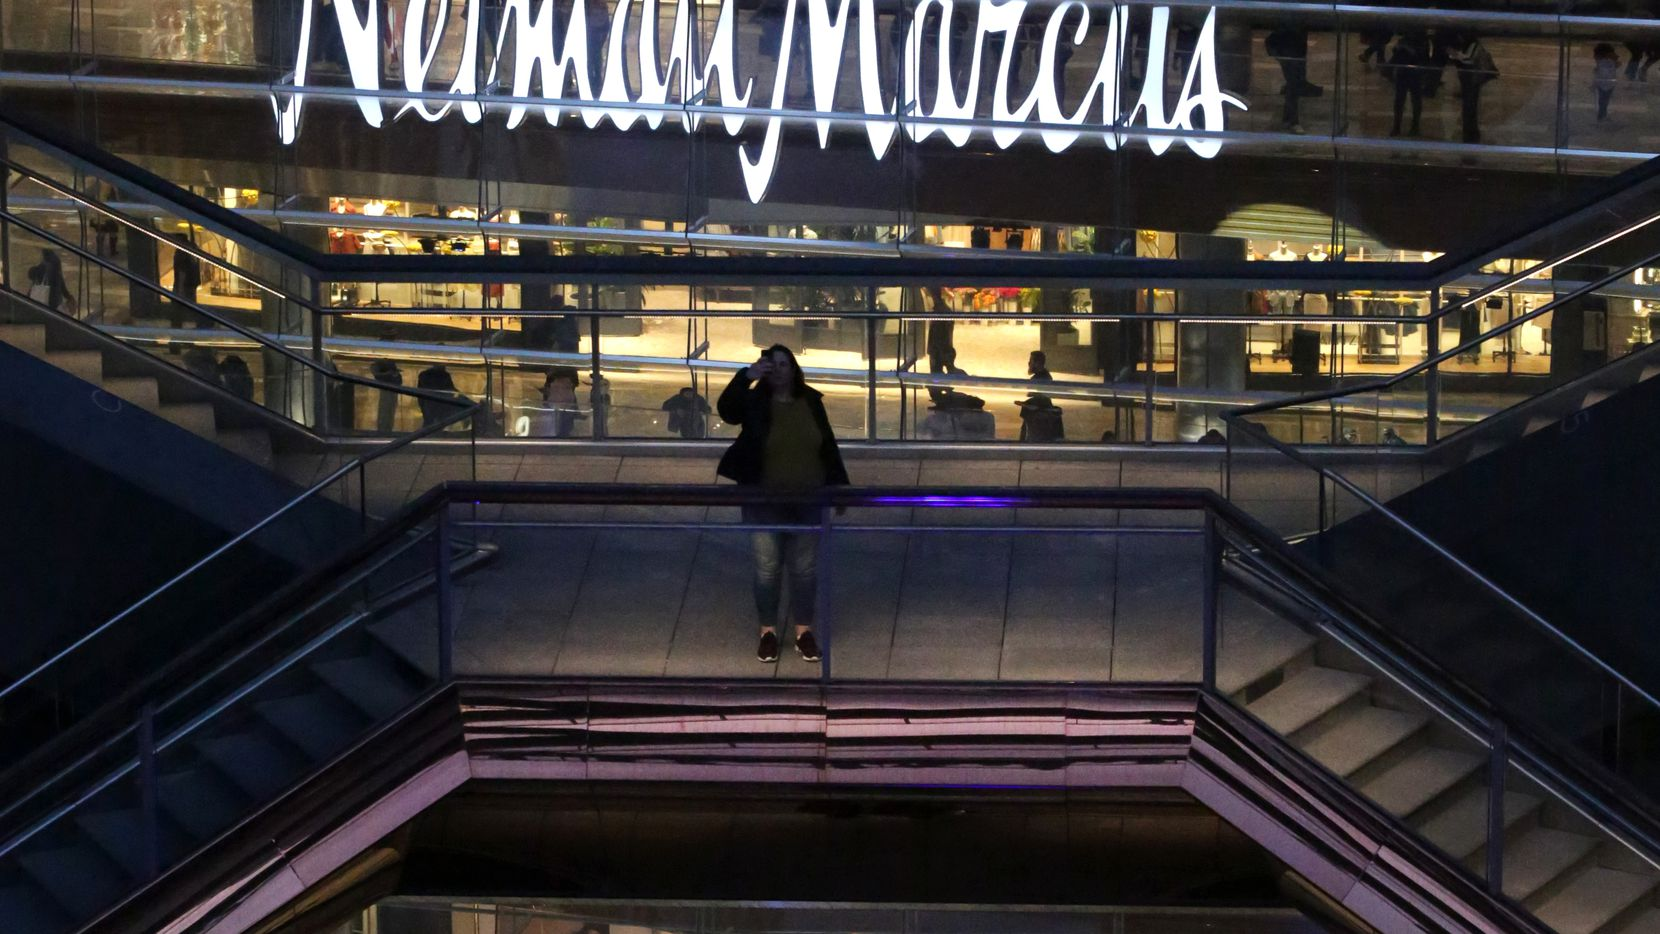 The Neiman Marcus store sign is visible as people gather inside The Vessel, at the opening of Hudson Yards in Manhattan, New York on Friday, March 15, 2019. (Yana Paskova/Special Contributor)Assignment ID: 10044130A